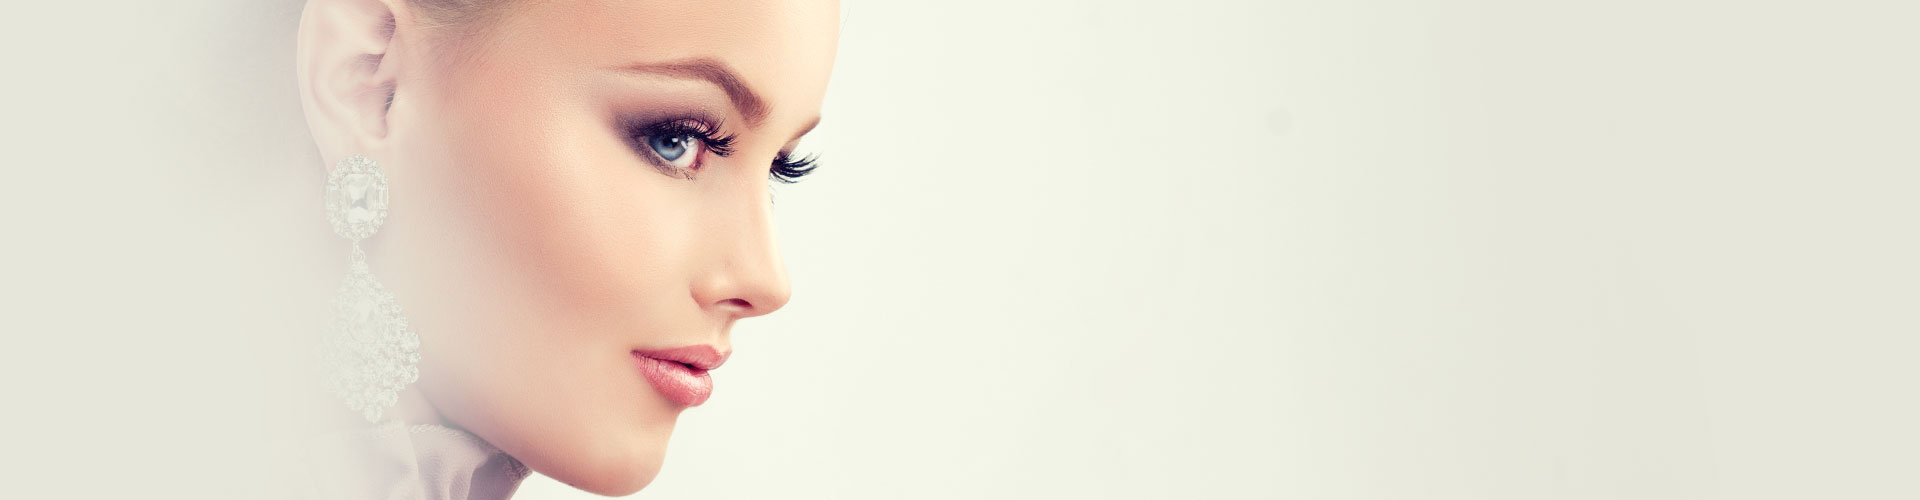 Rhinoplasty Los Angeles